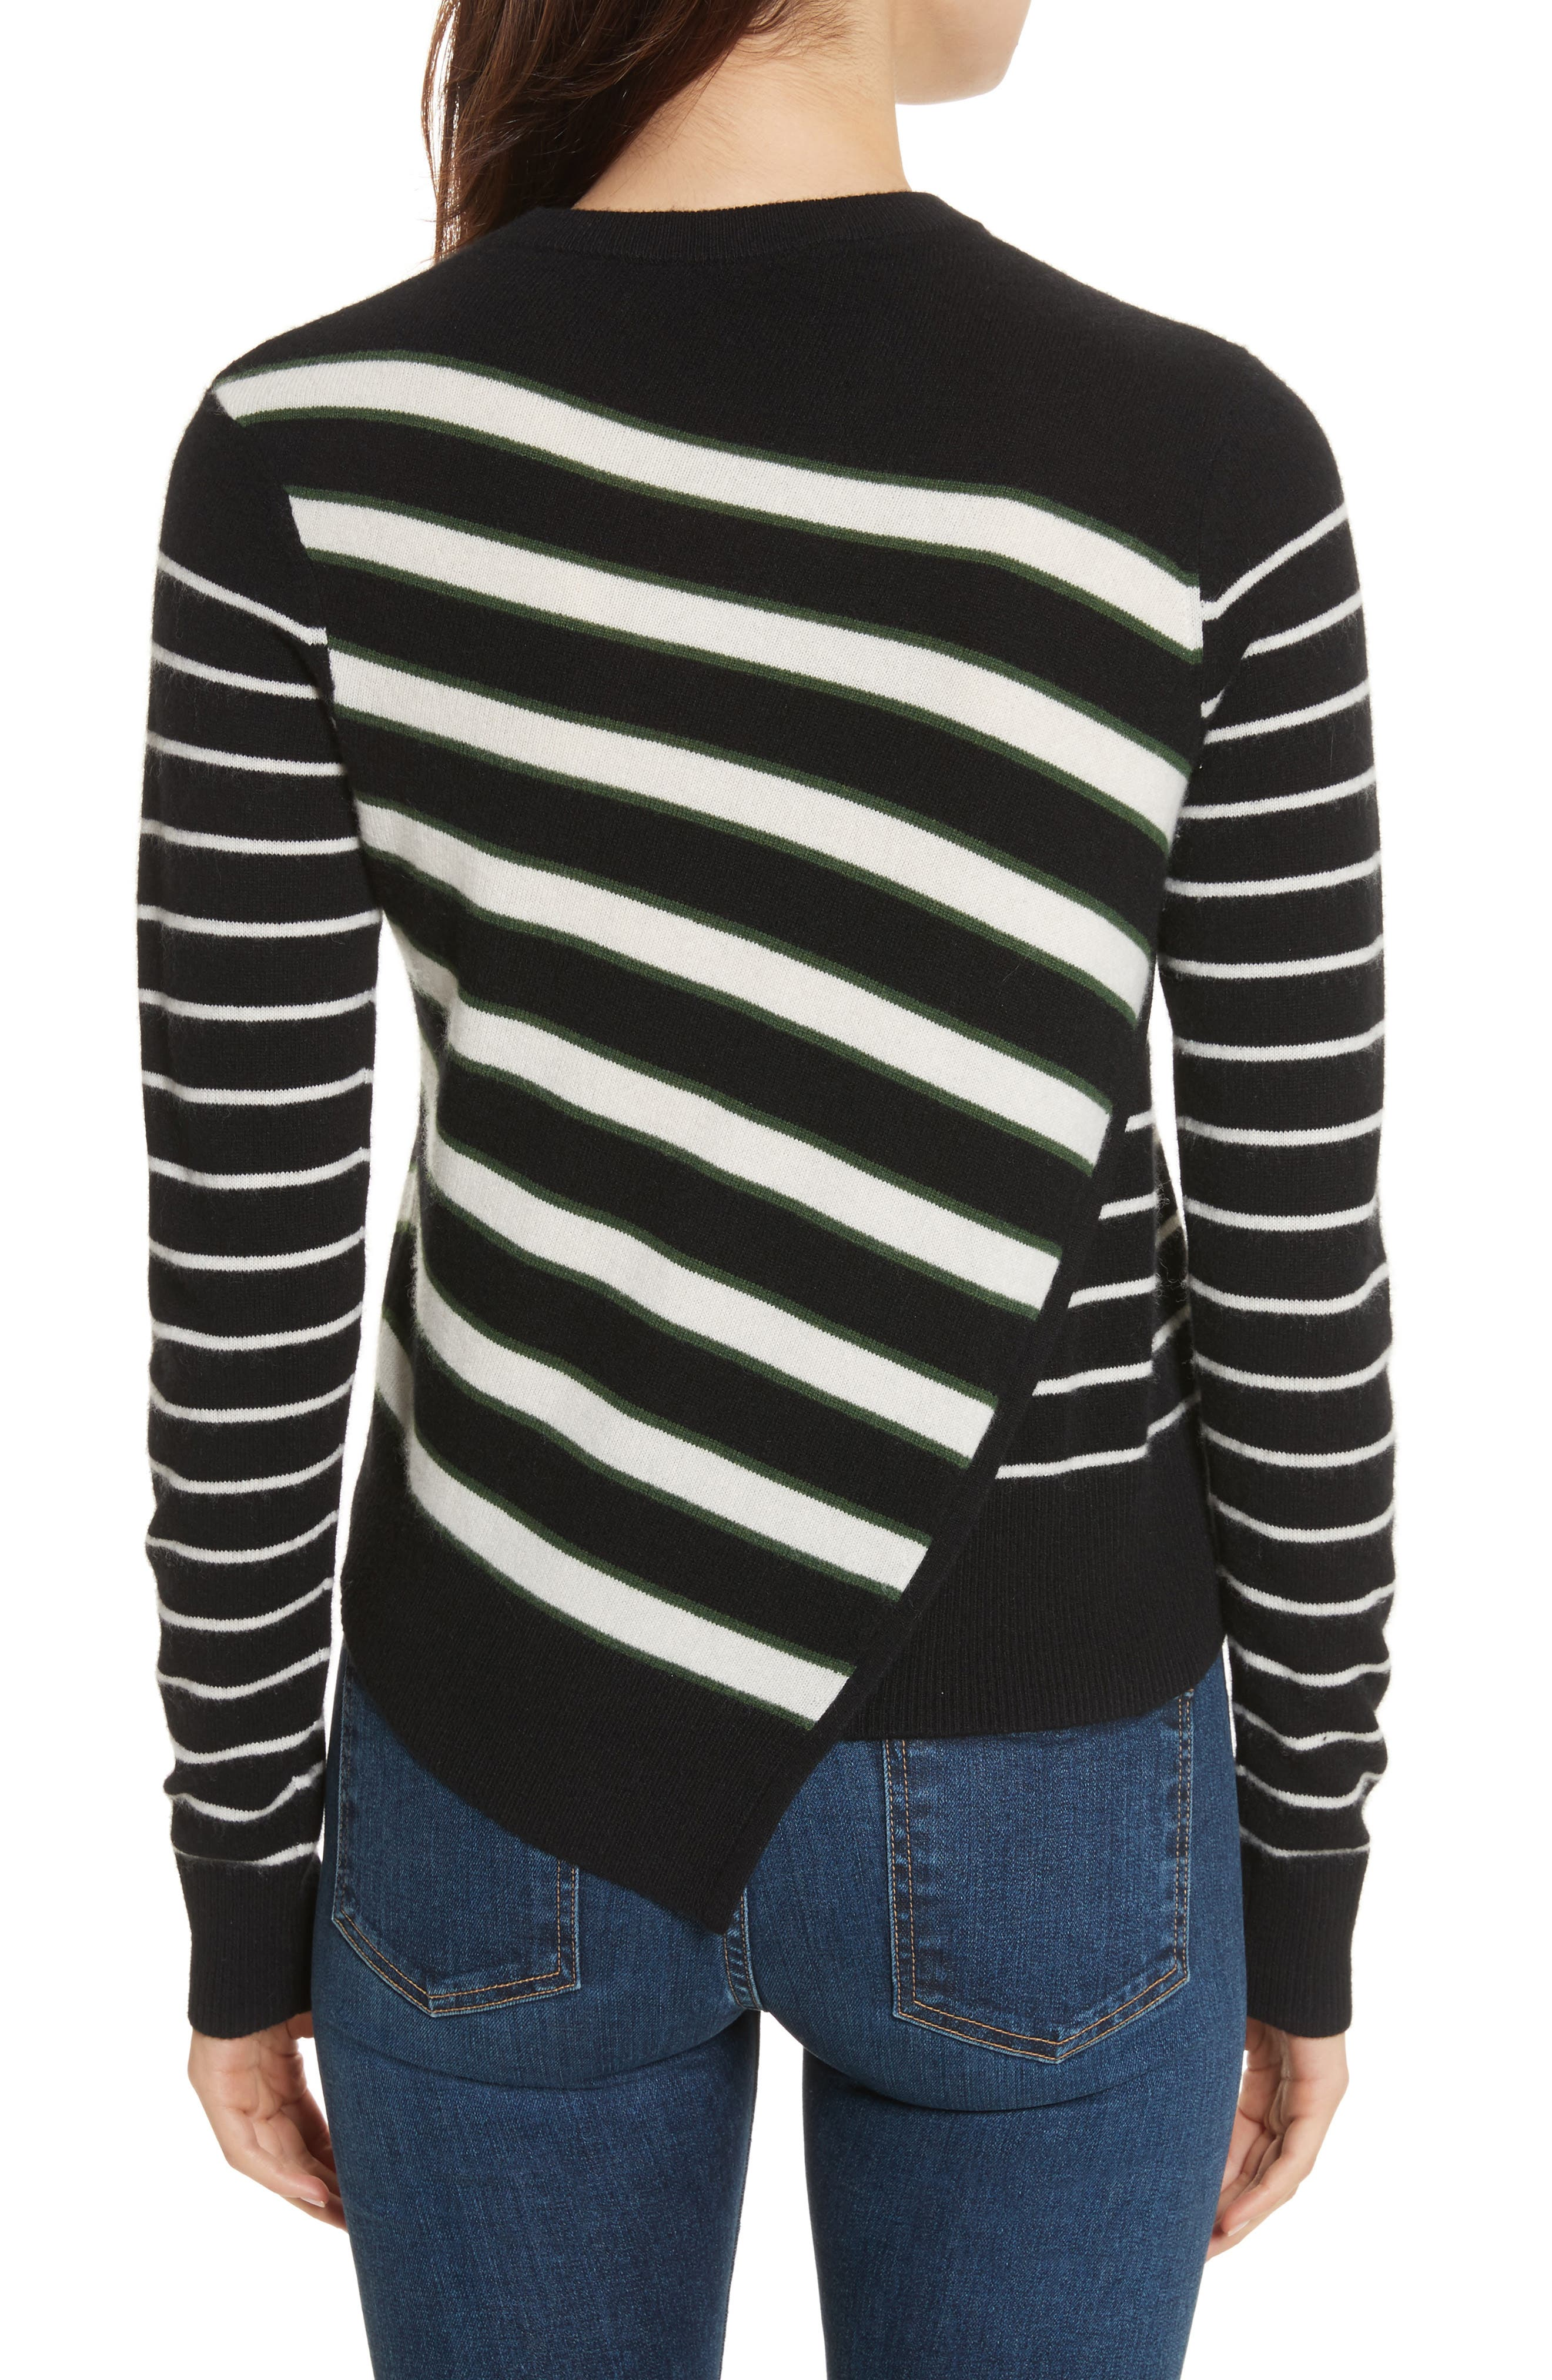 Pepper Cashmere Sweater,                             Alternate thumbnail 2, color,